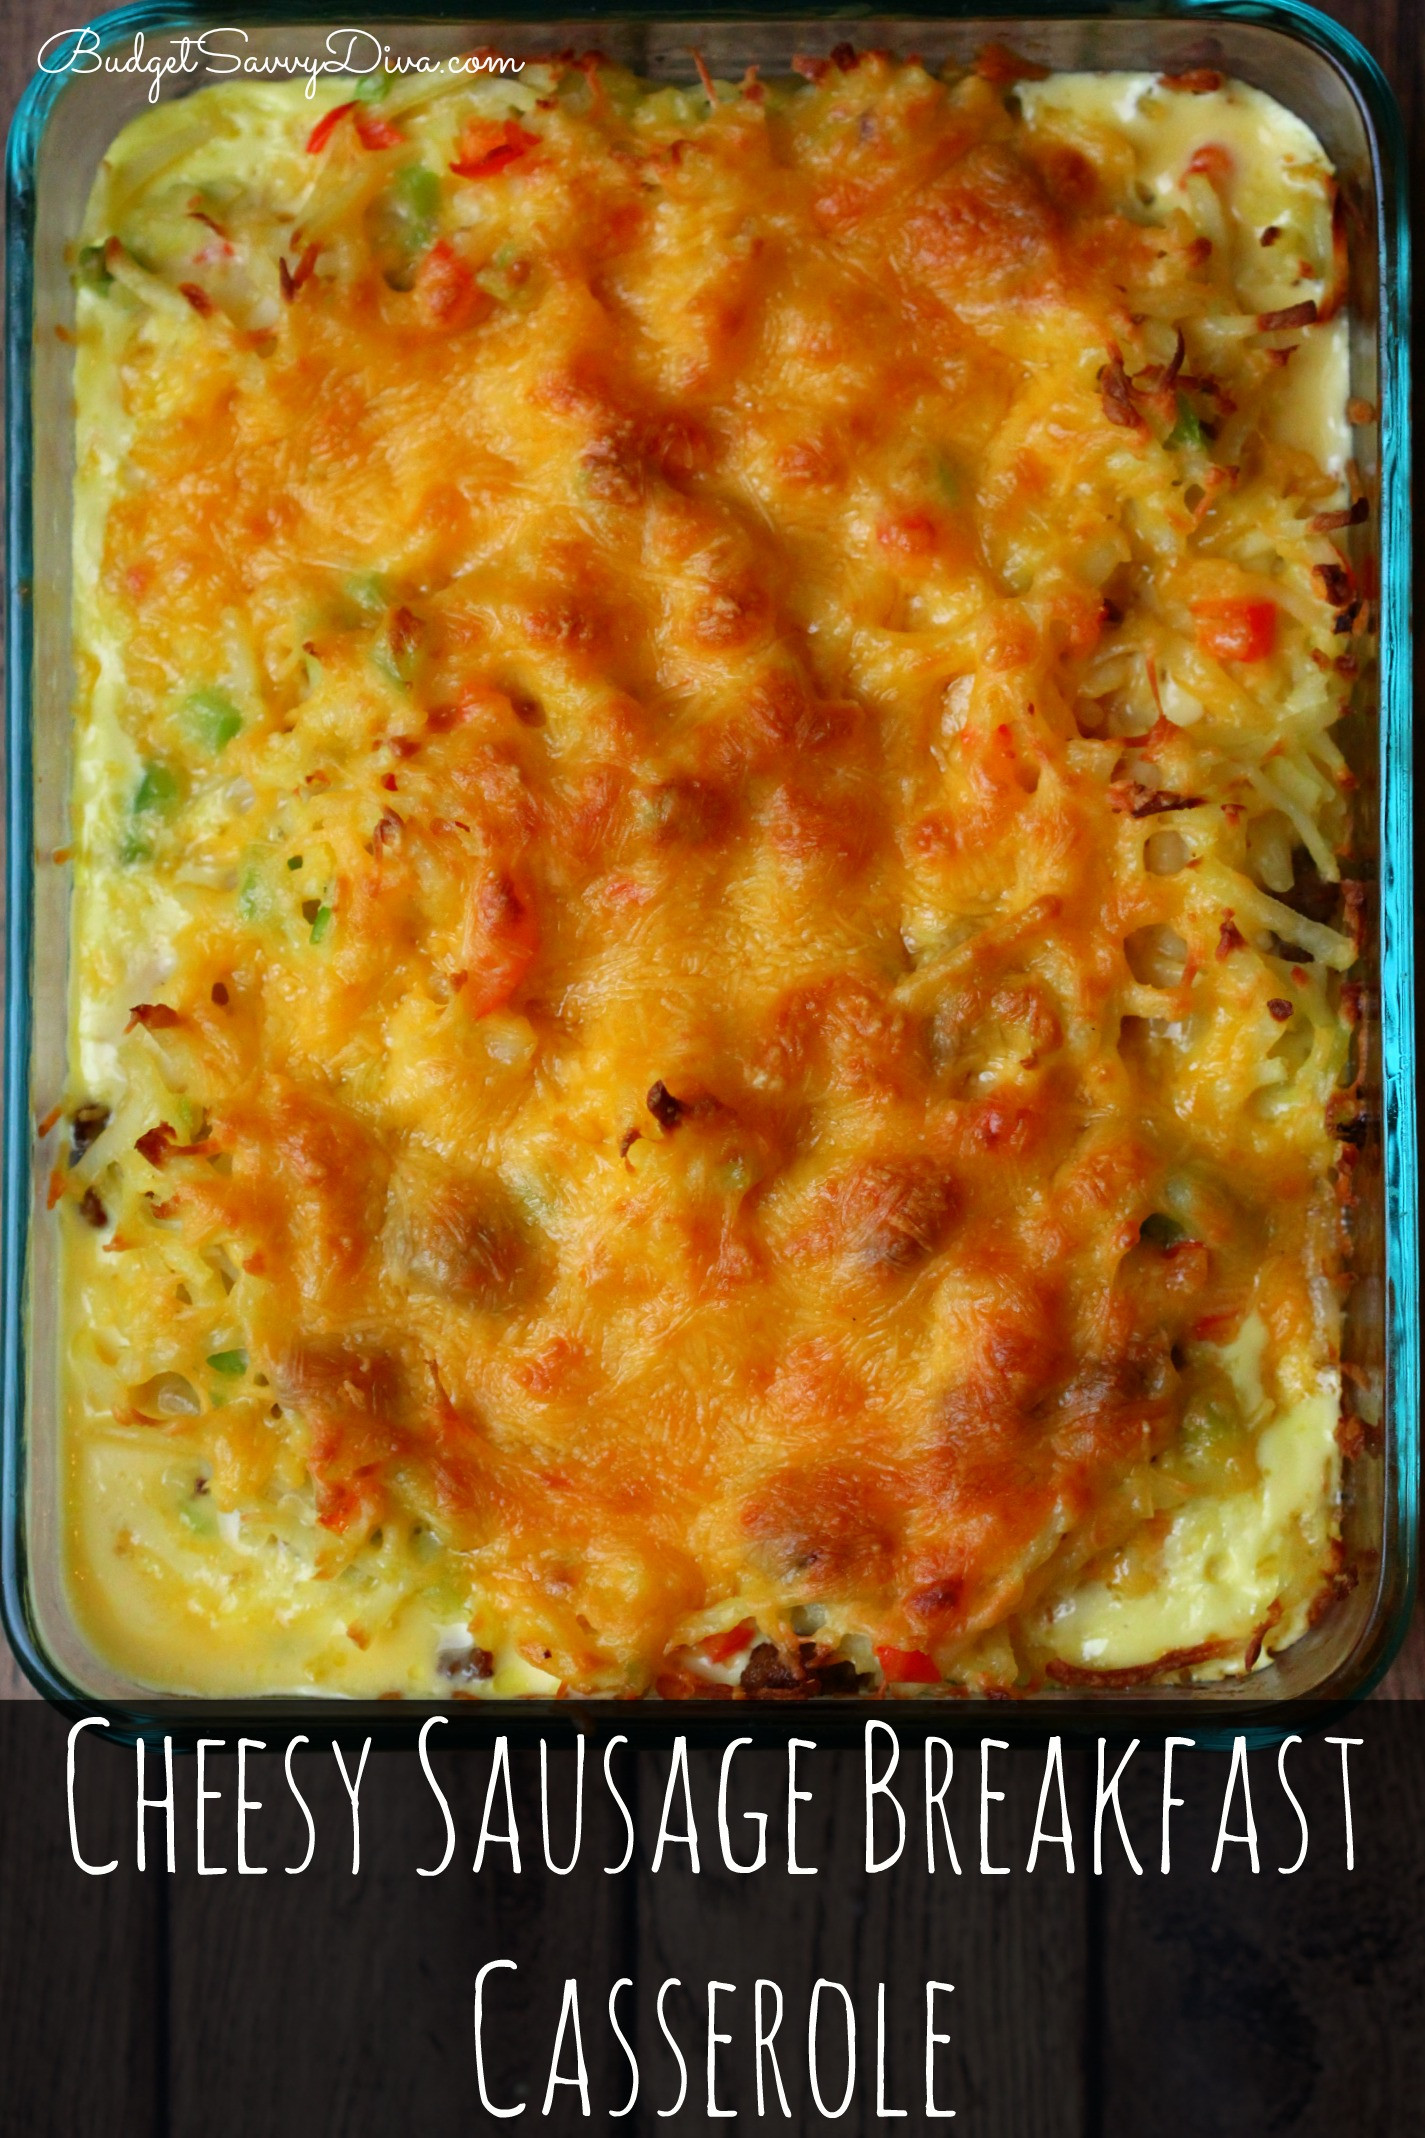 Breakfast Casserole Recipes With Sausage  Cheesy Sausage Breakfast Casserole Recipe